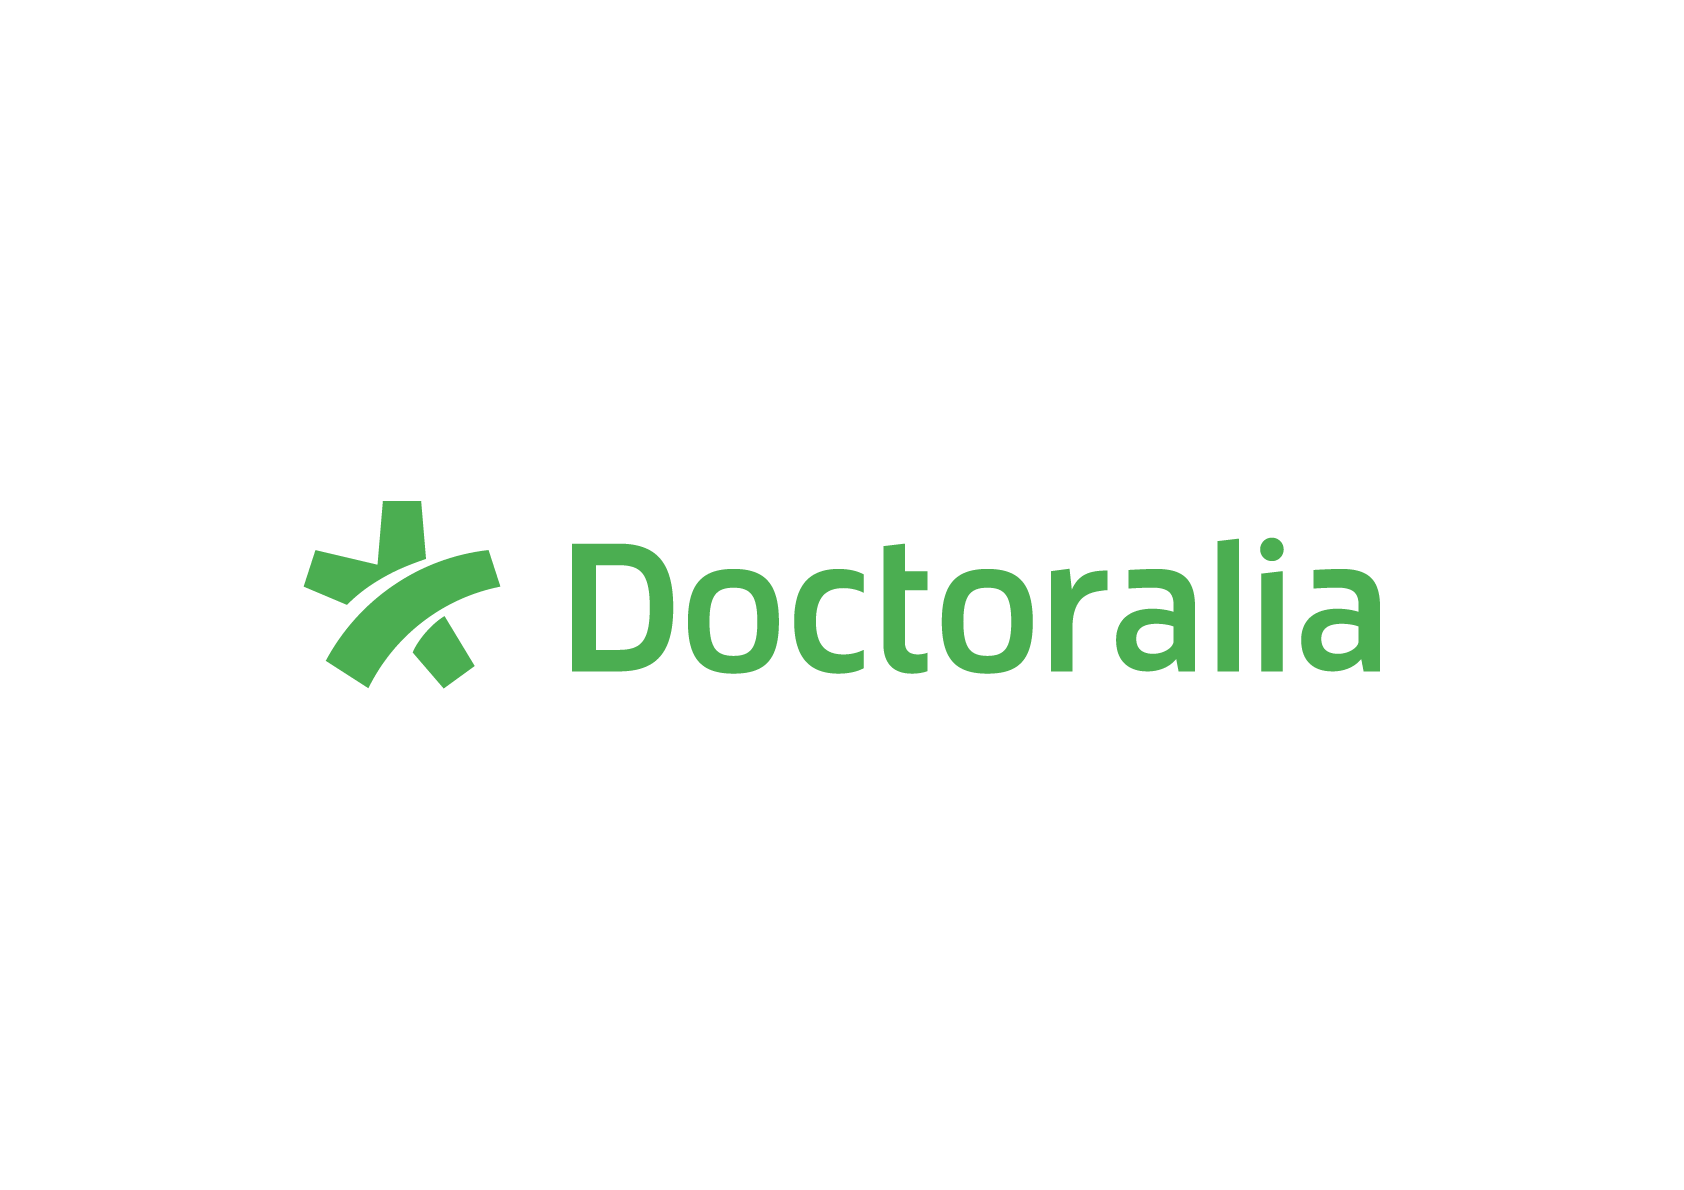 Clínica Dental Basi en Doctoralia